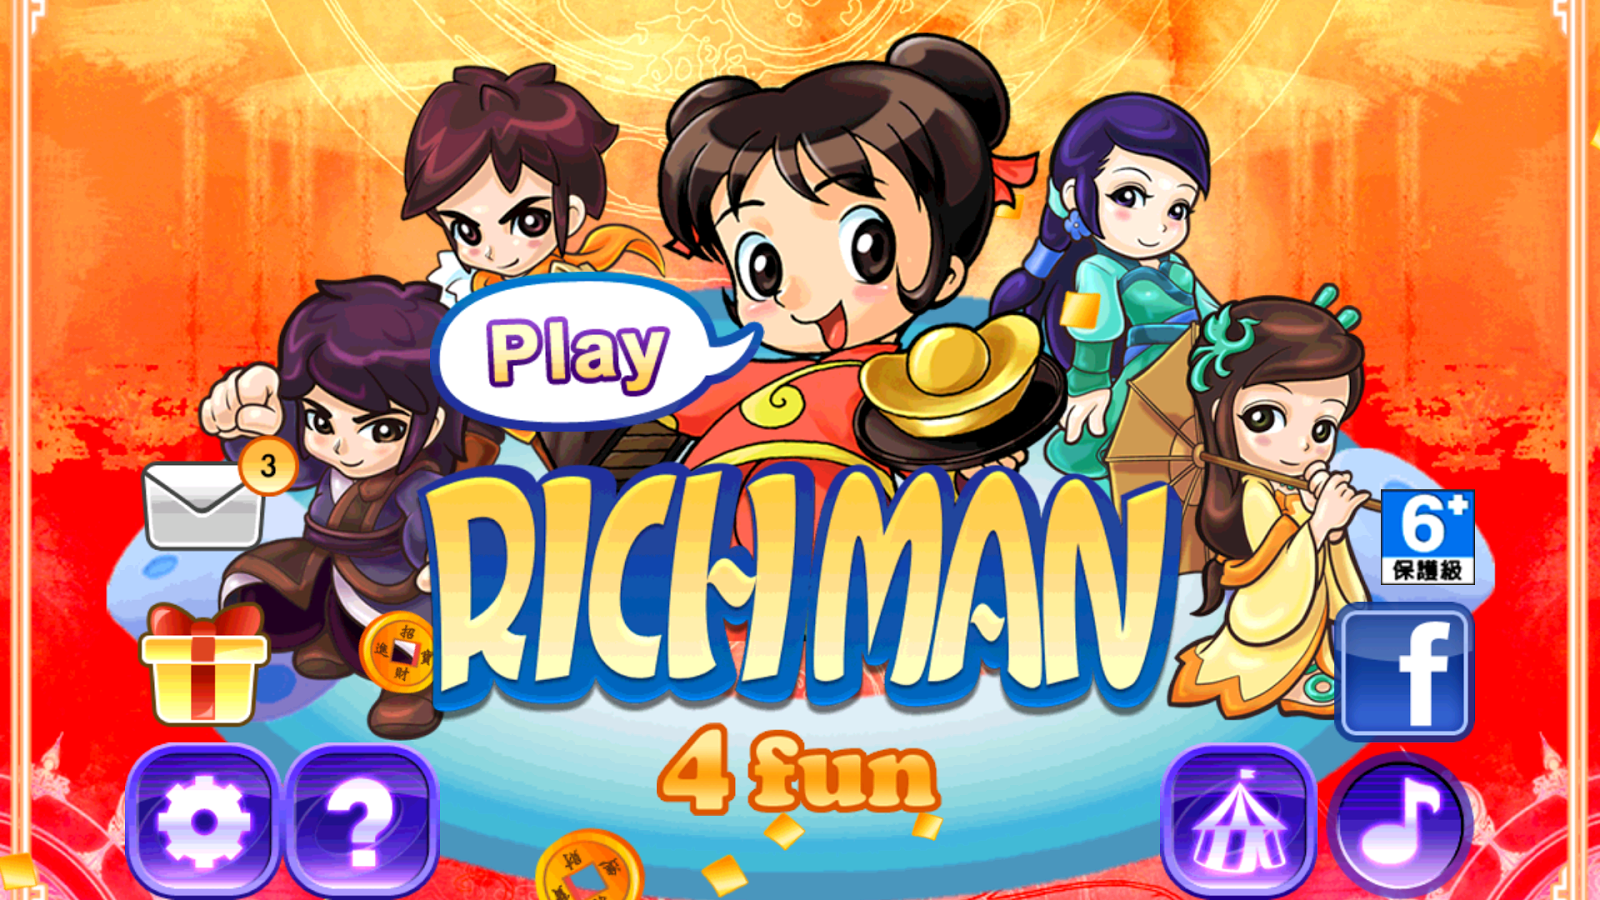 Richman 4 fun - screenshot